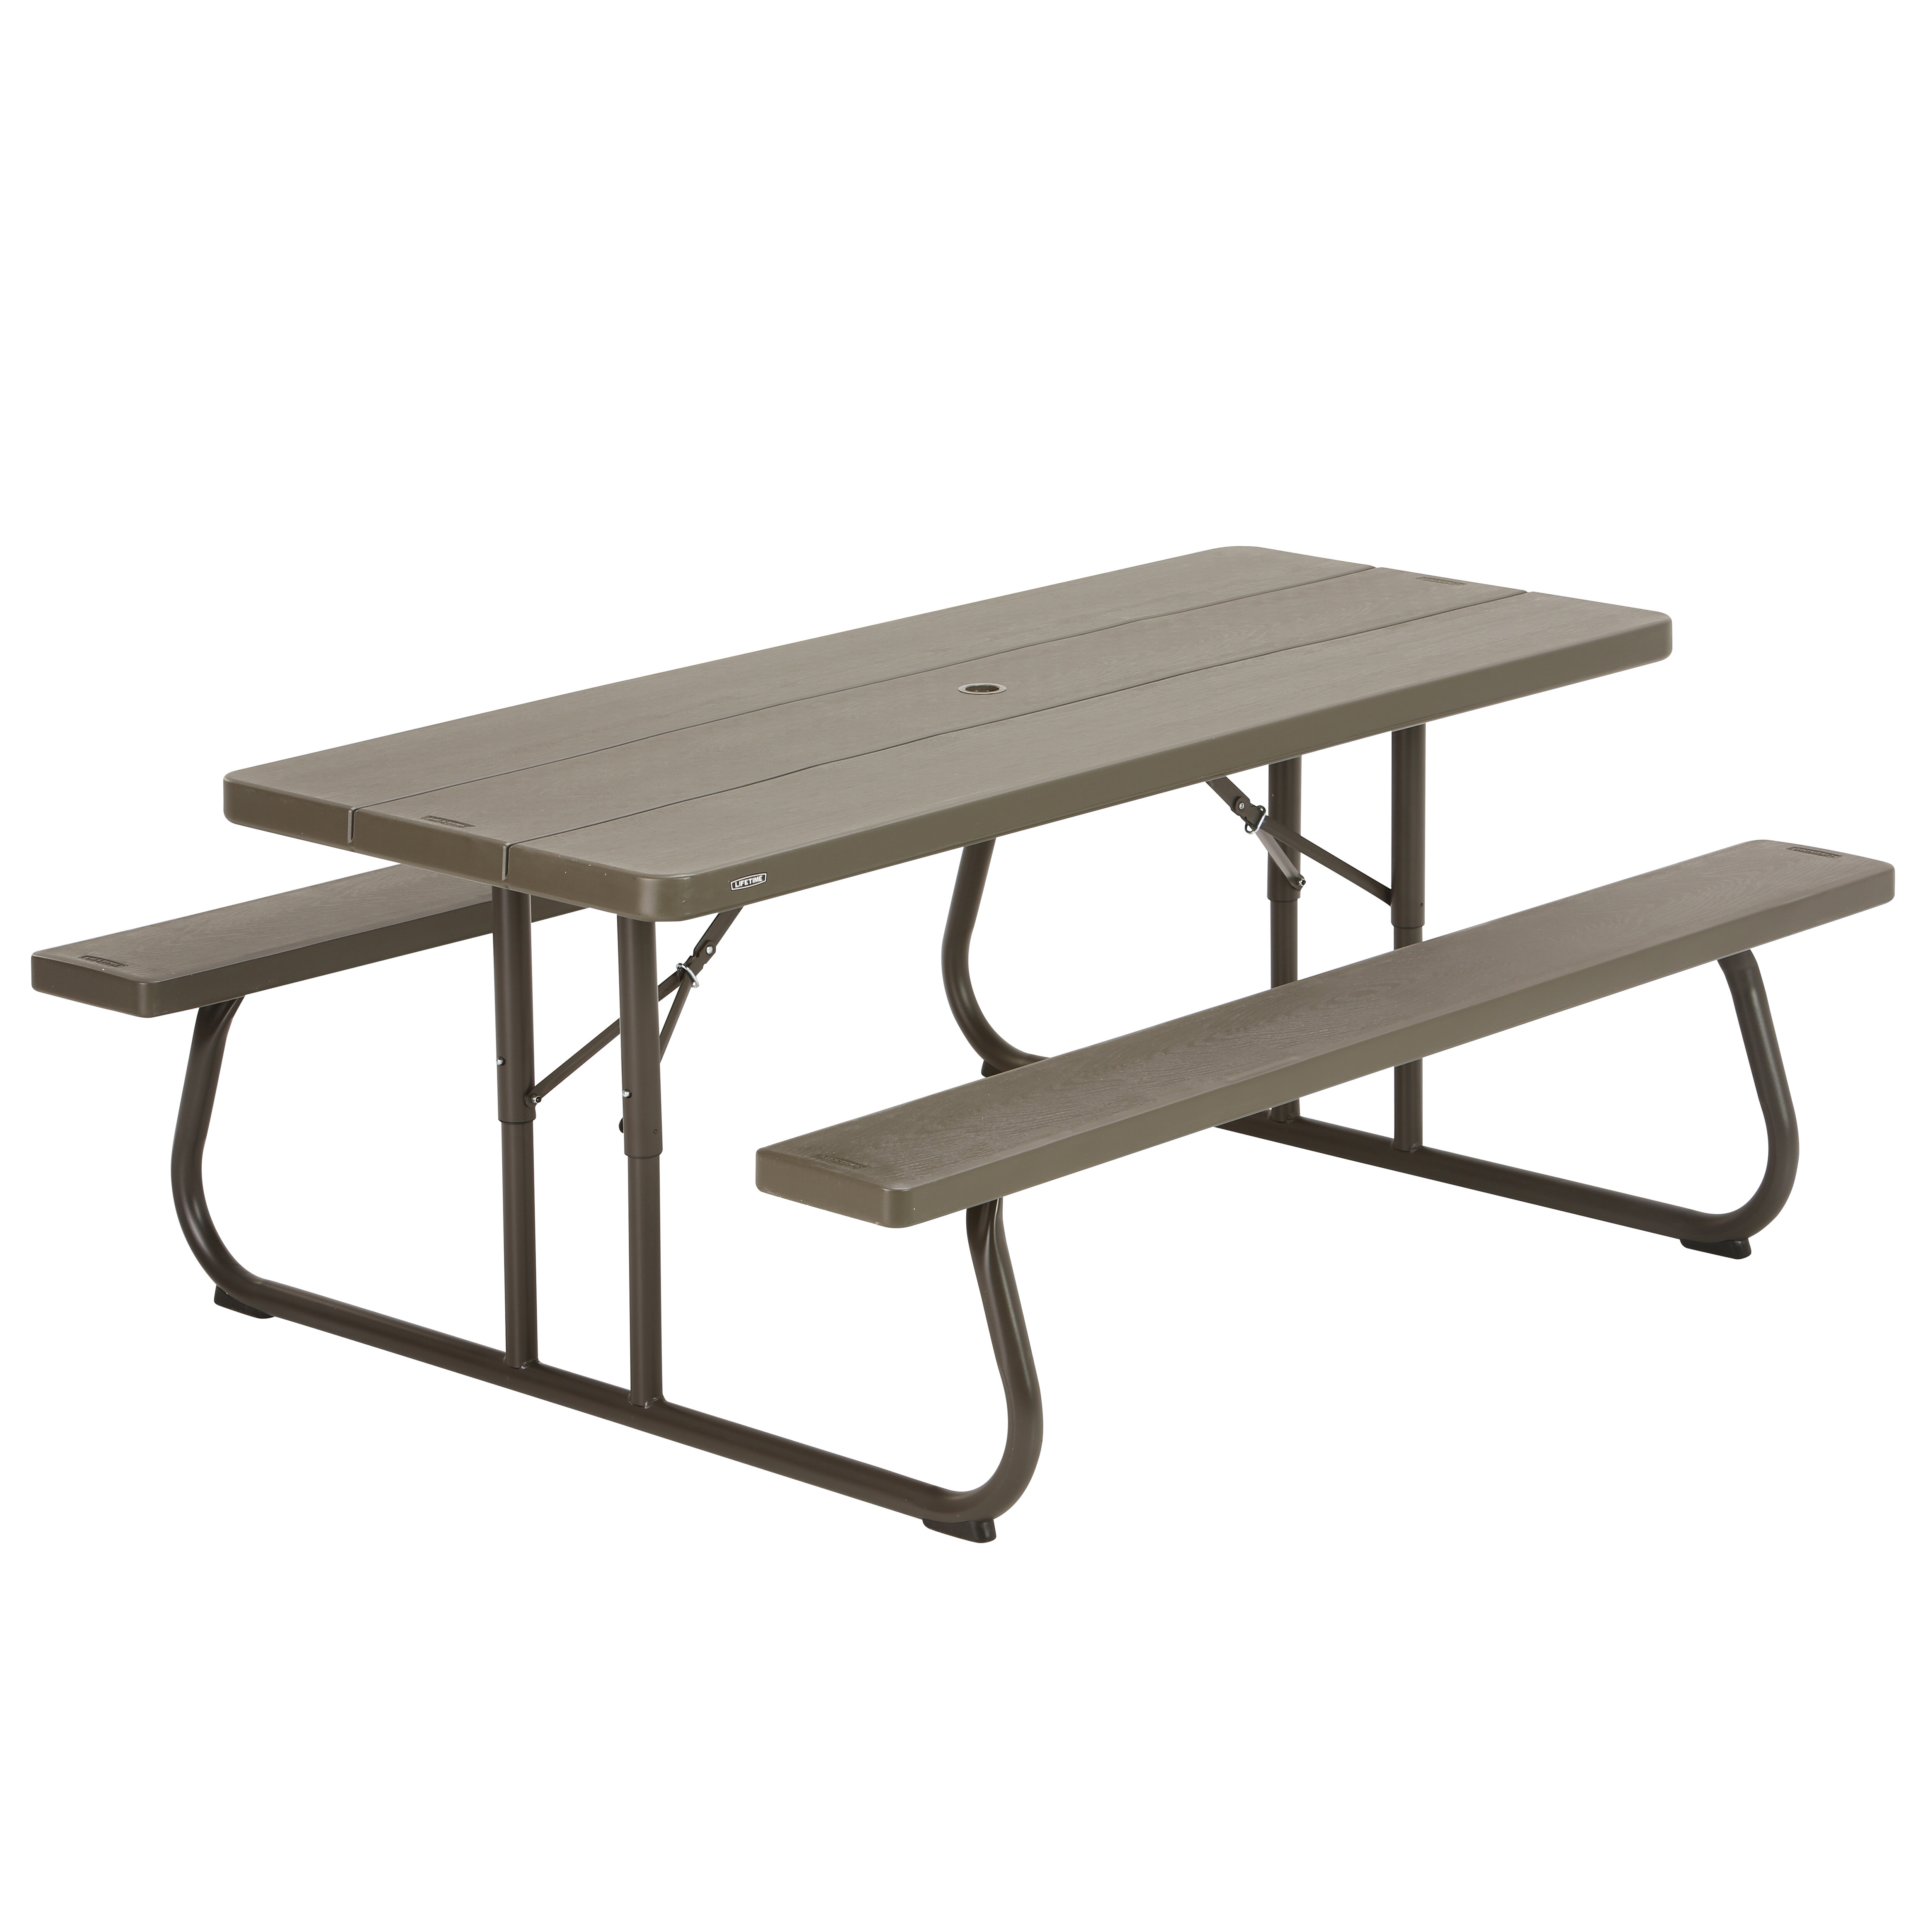 silver downloads bayview surfacemountinstalationtoconcreteusingstainlesssteelanchors bc furnishings copy tables maple heights wishbone ridge item at estates site table pdf picnic bench